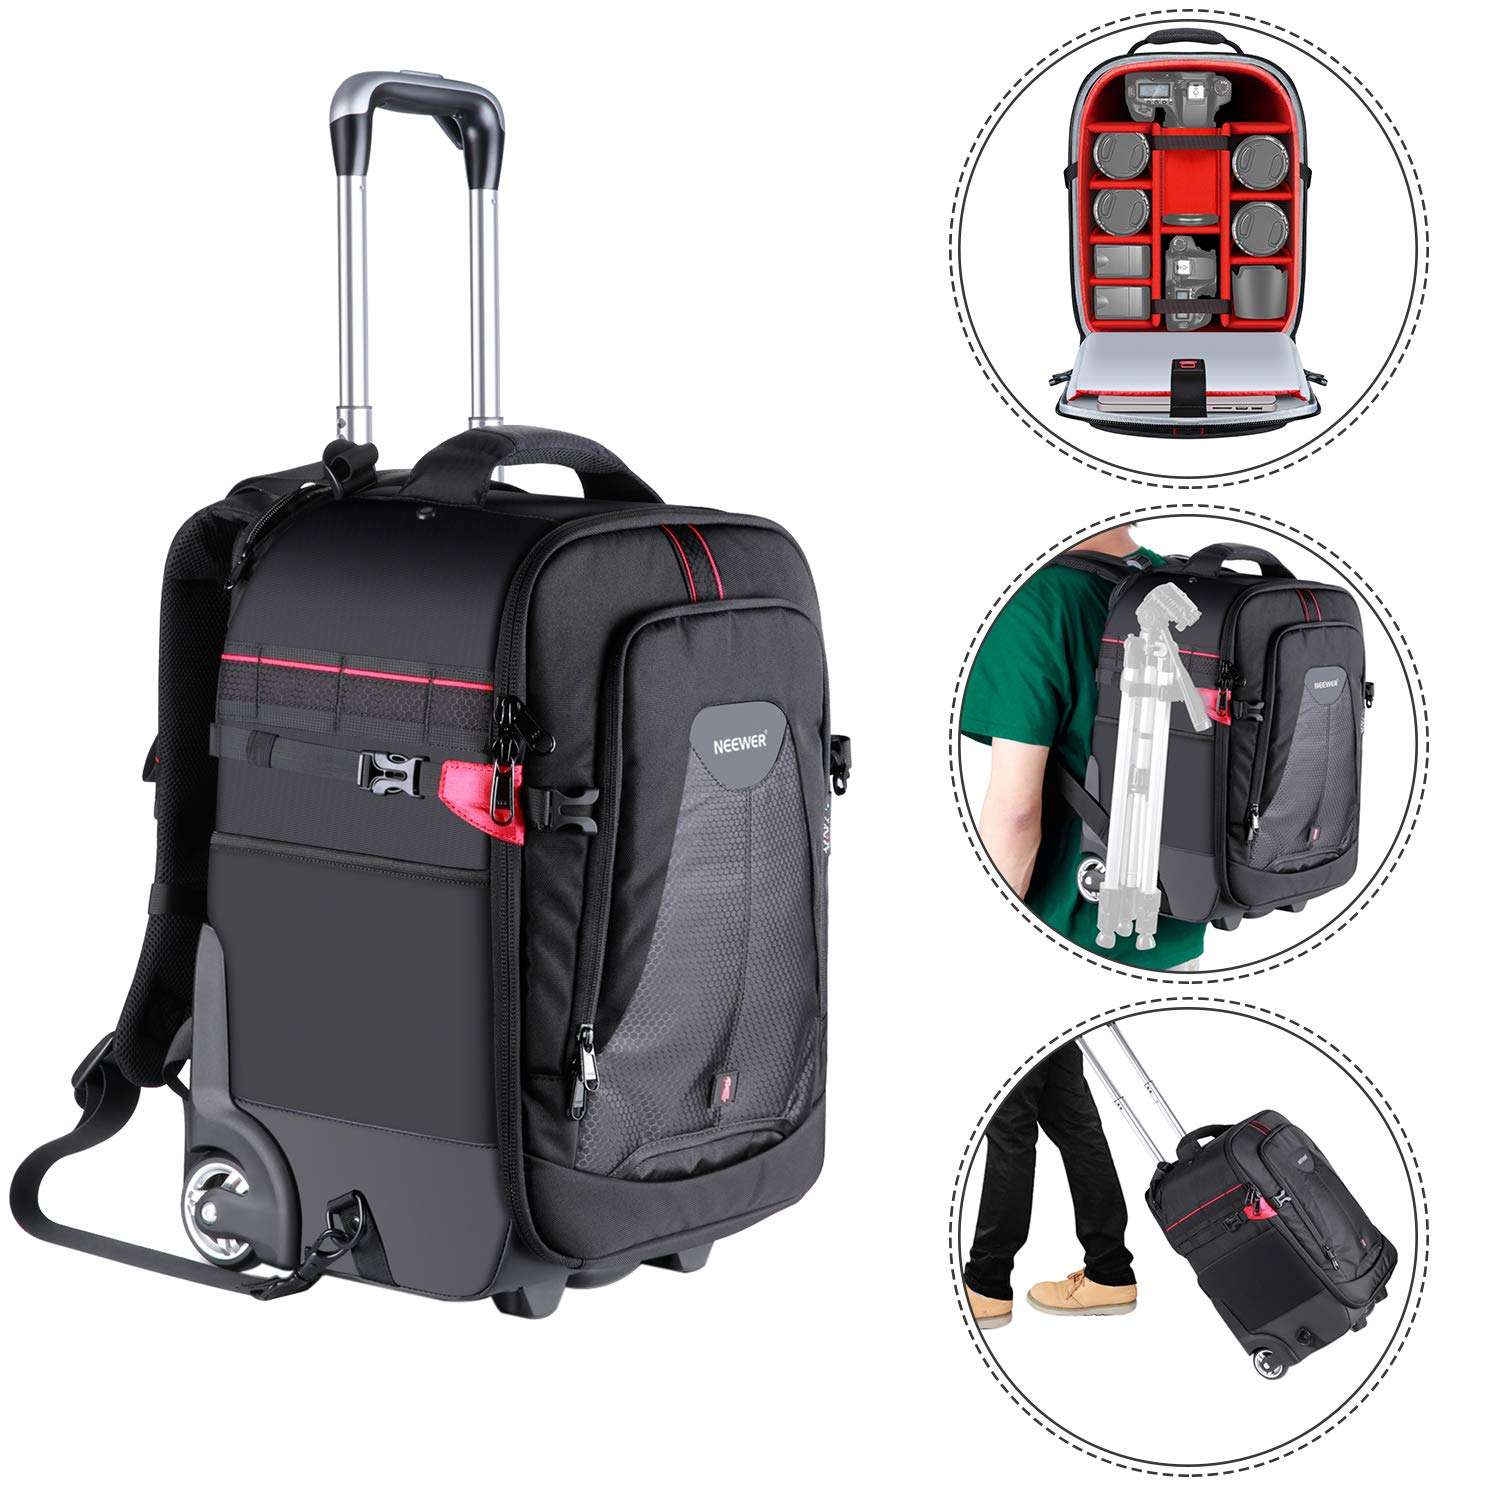 Neewer 2-in-1 Rolling Camera Backpack Trolley Case-Anti-Shock Detachable Padded Compartment, Hidden Pull Bar,Durable,Waterproof for Camera,Tripod,Flash Light,Lens,Laptop (Red Interior) by Neewer